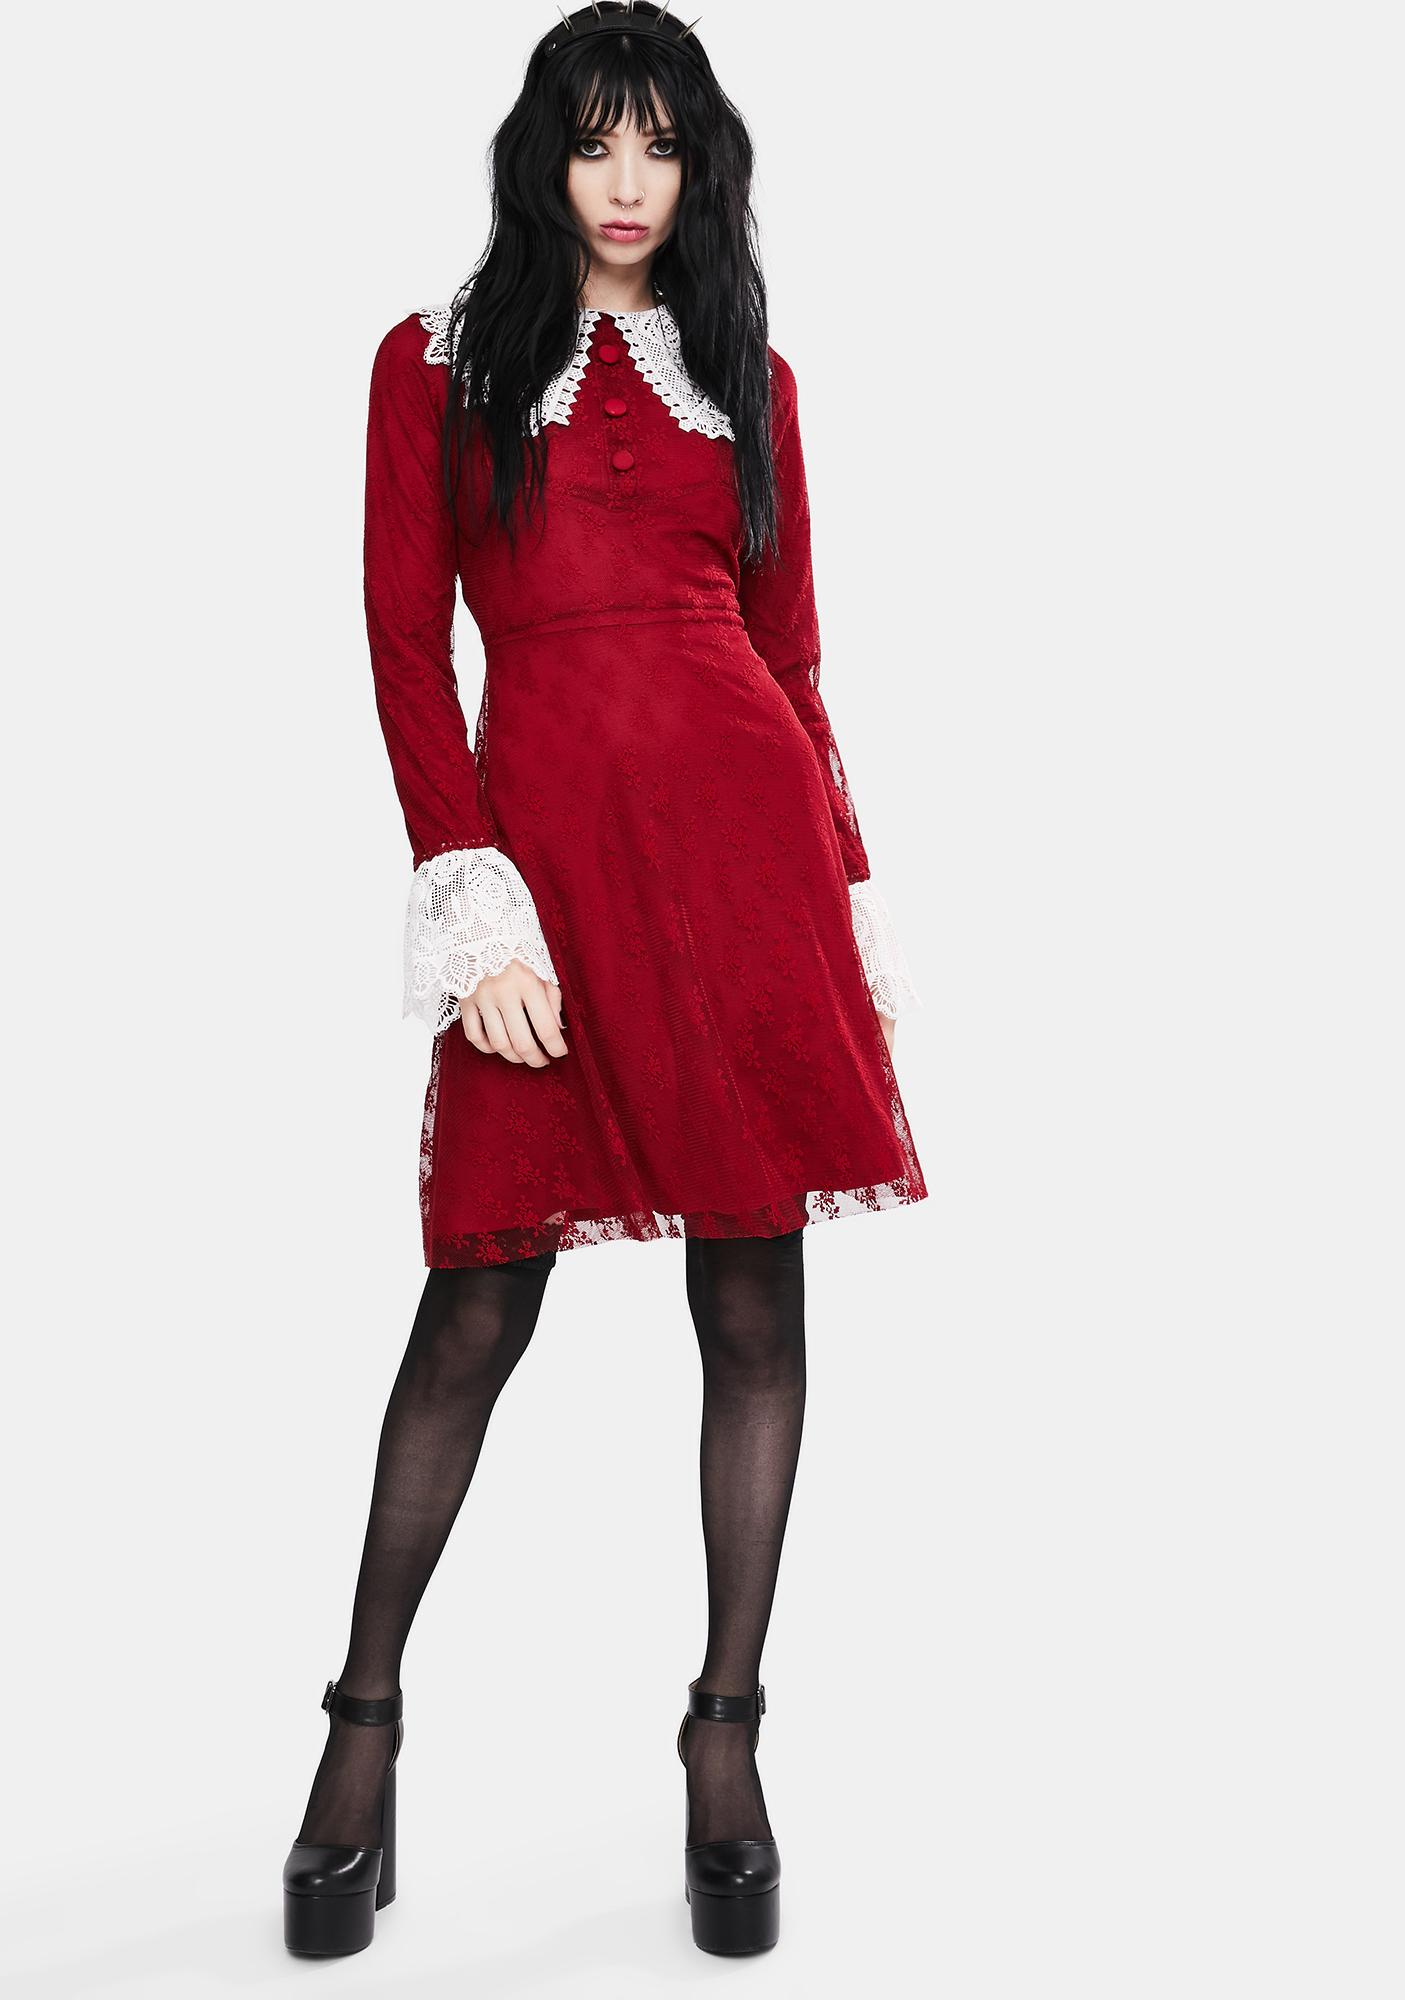 Jawbreaker Red Weird Sisters Lace Fit And Flare Dress